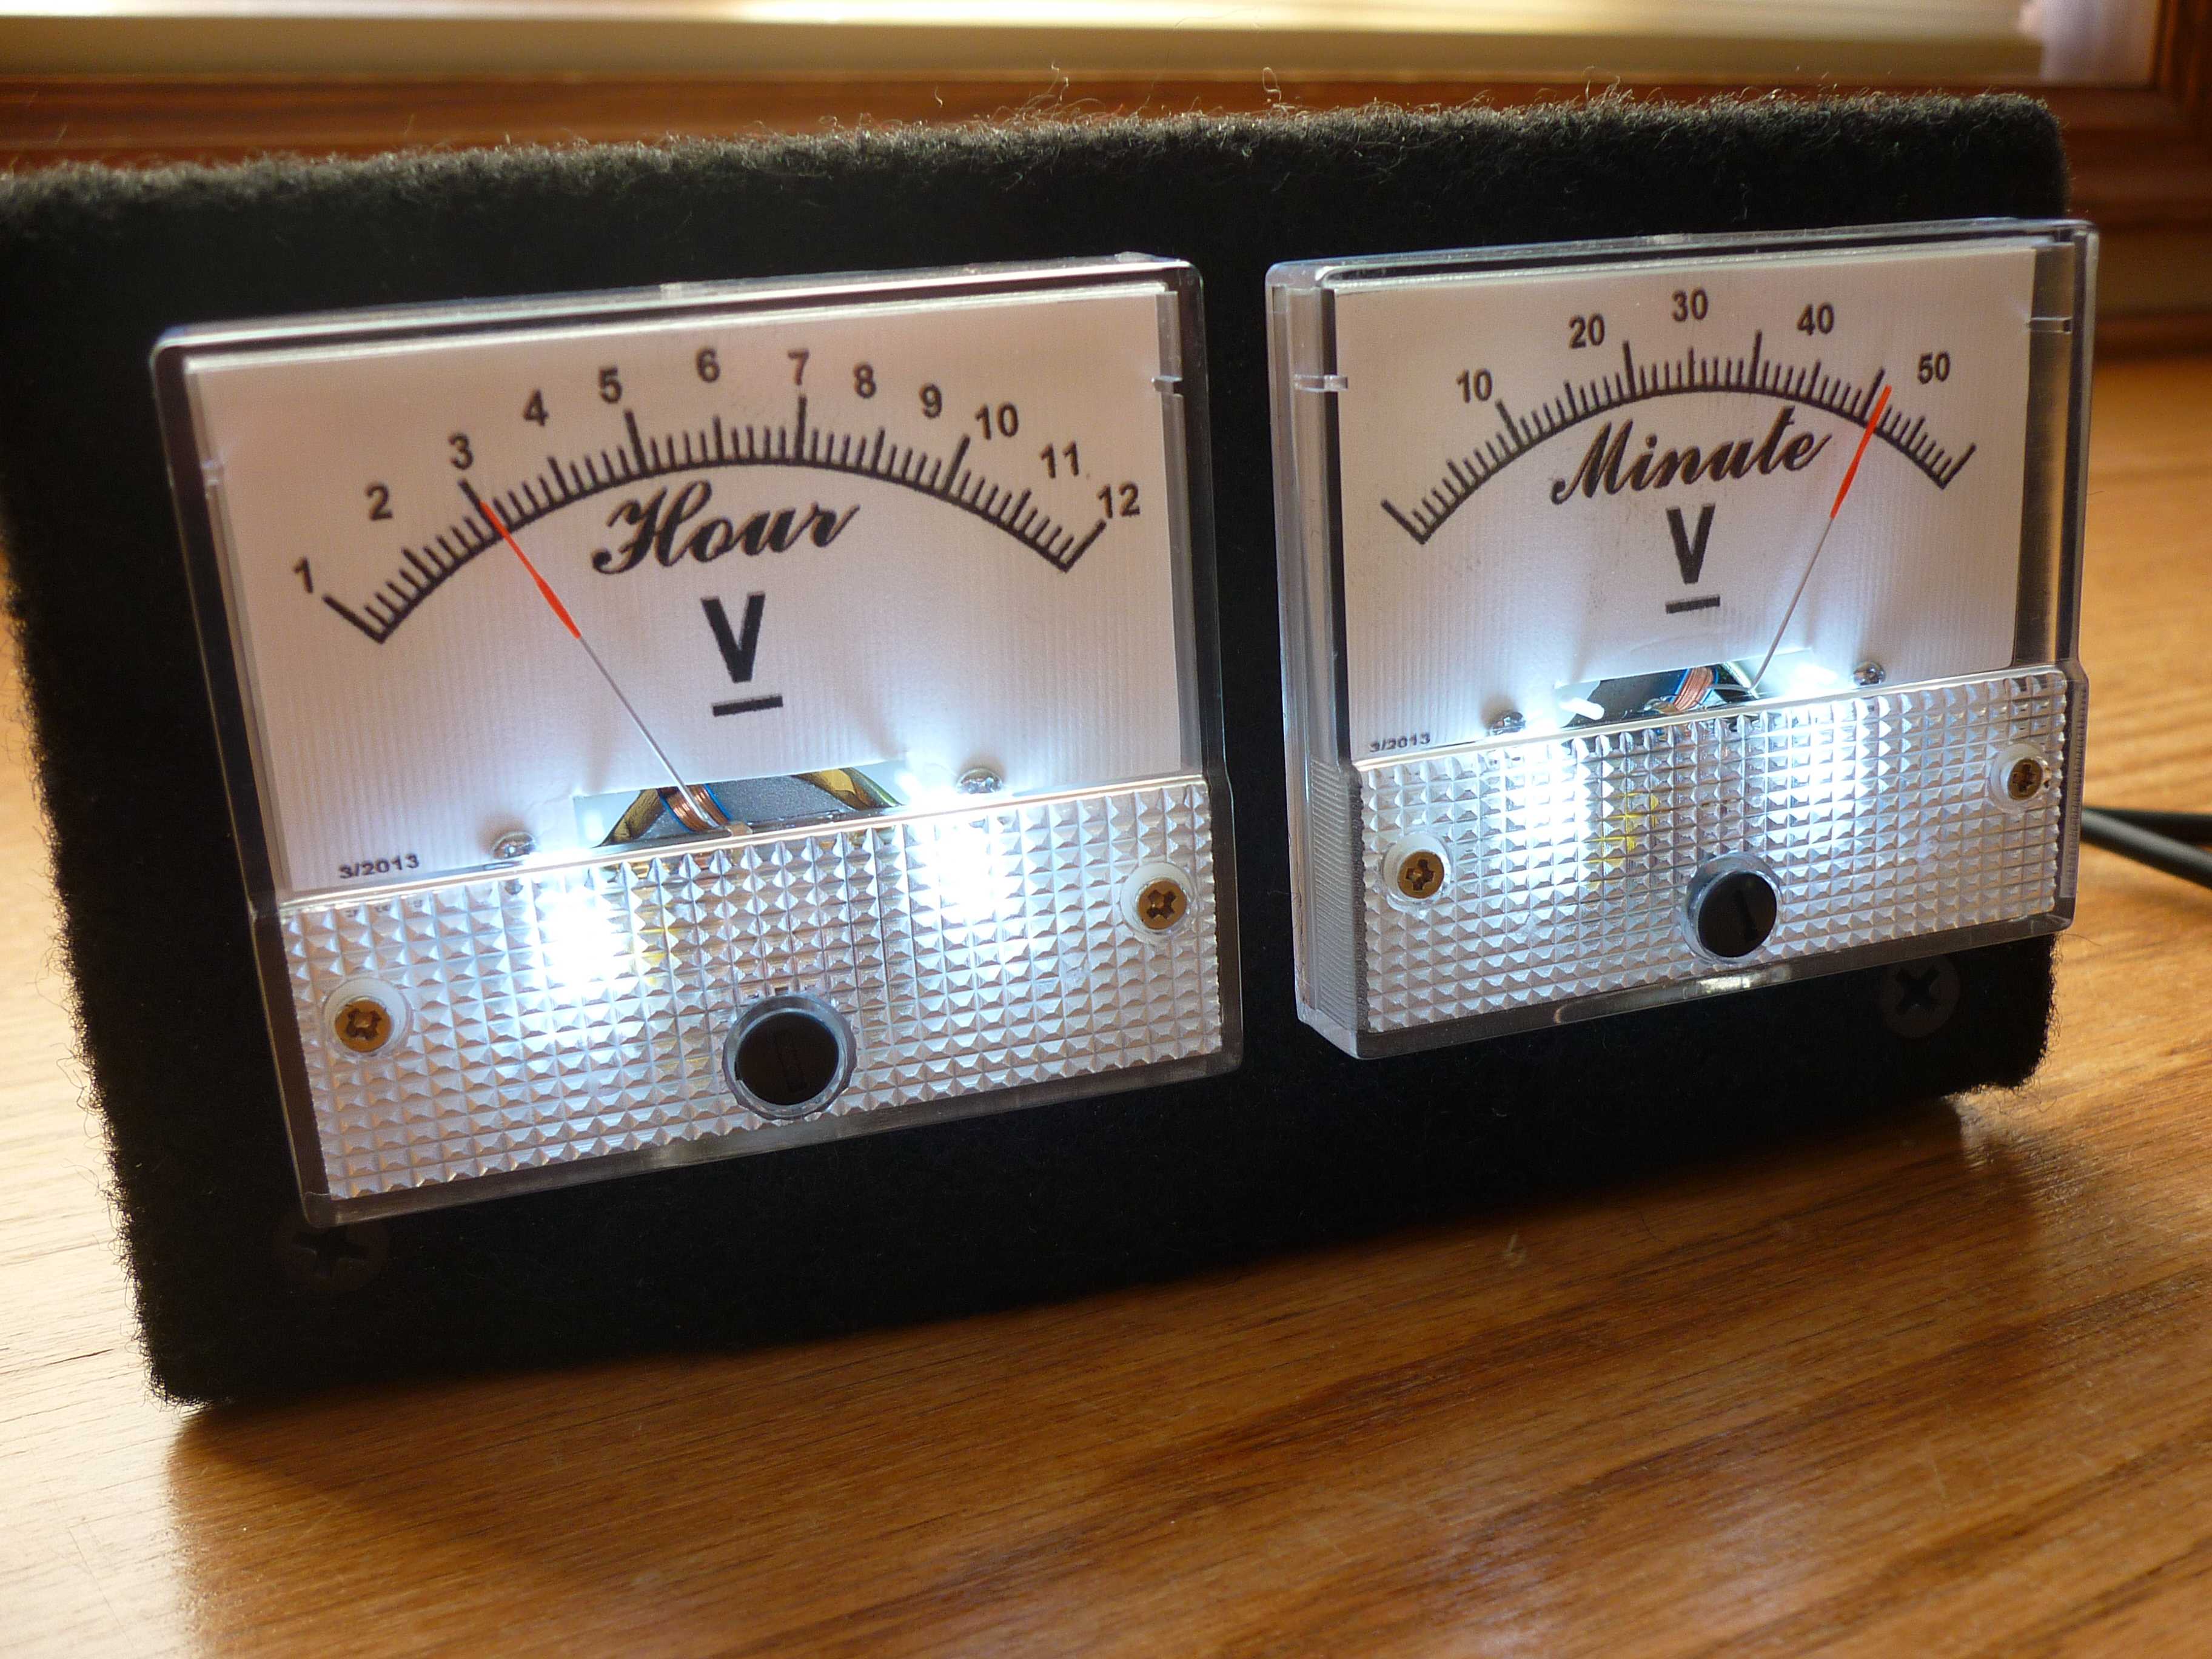 Analog VU meter and Clock (Arduino Powered)